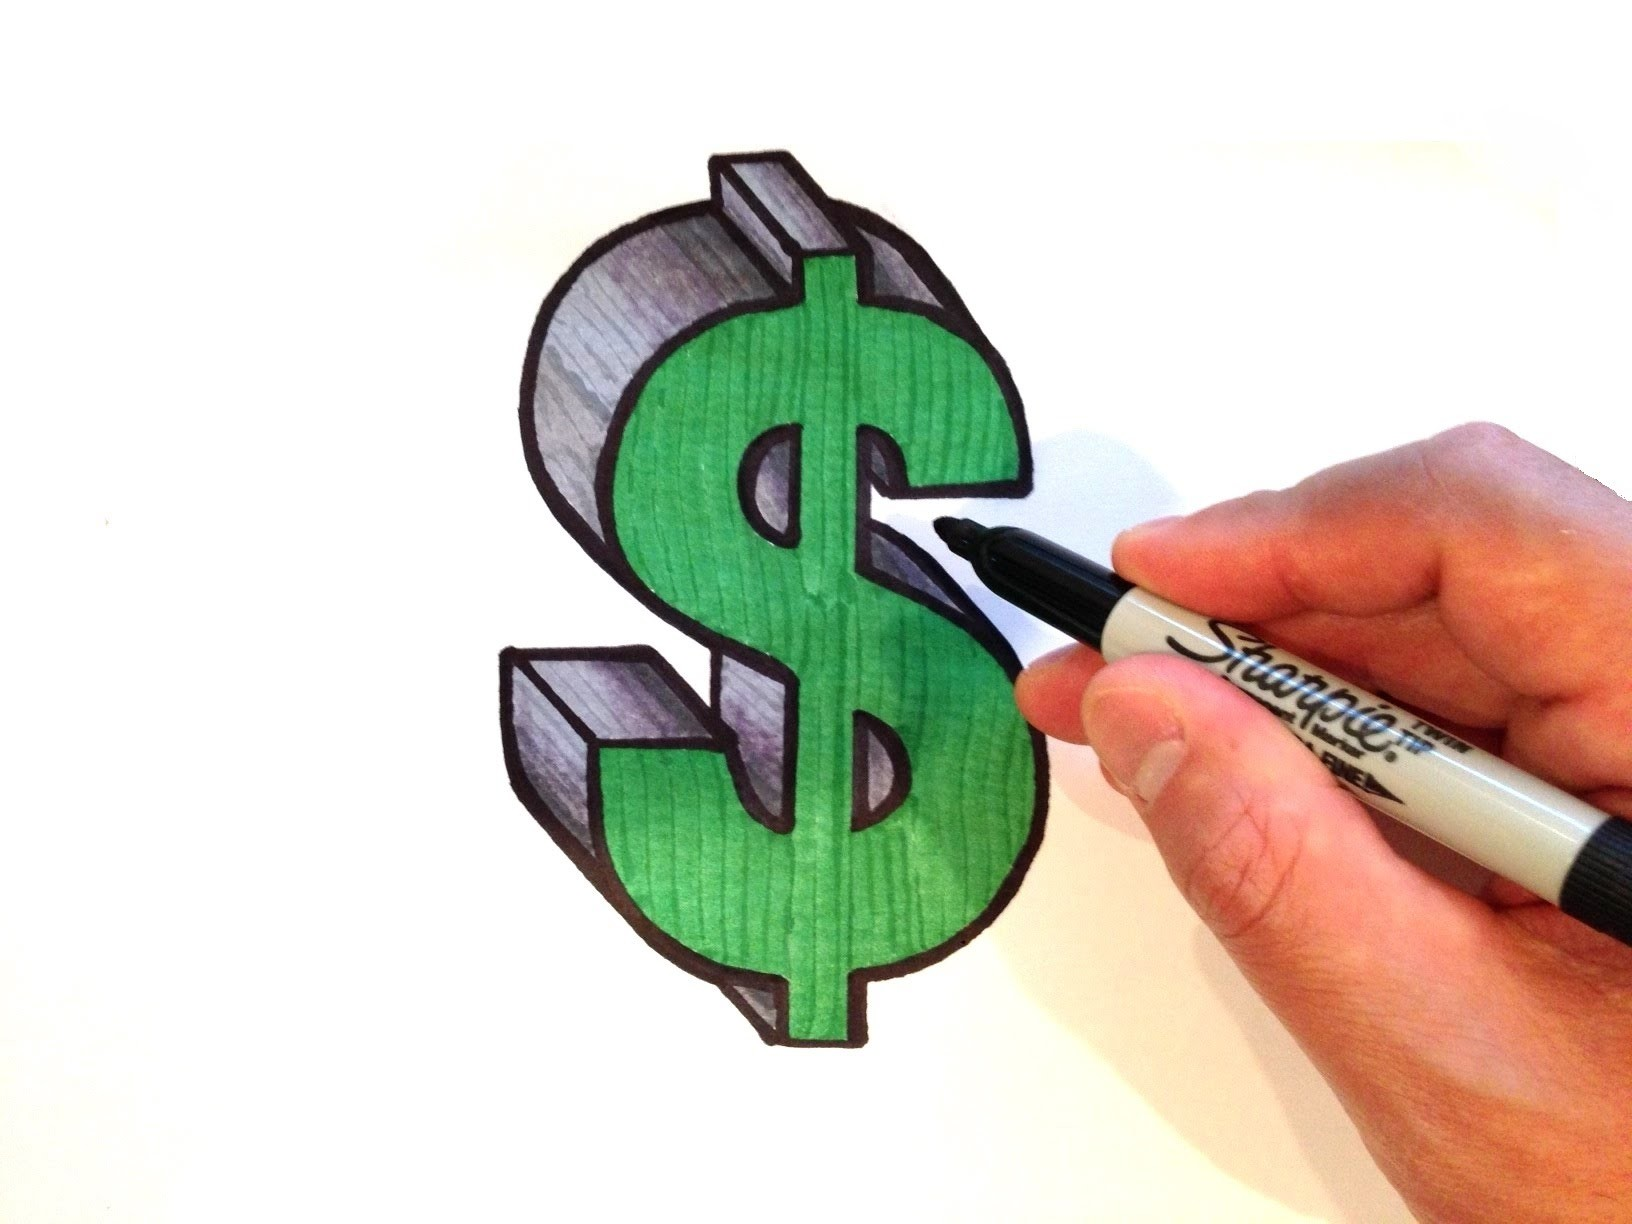 1632x1224 draw, how to draw a dollar sign in how to draw a dollar sign